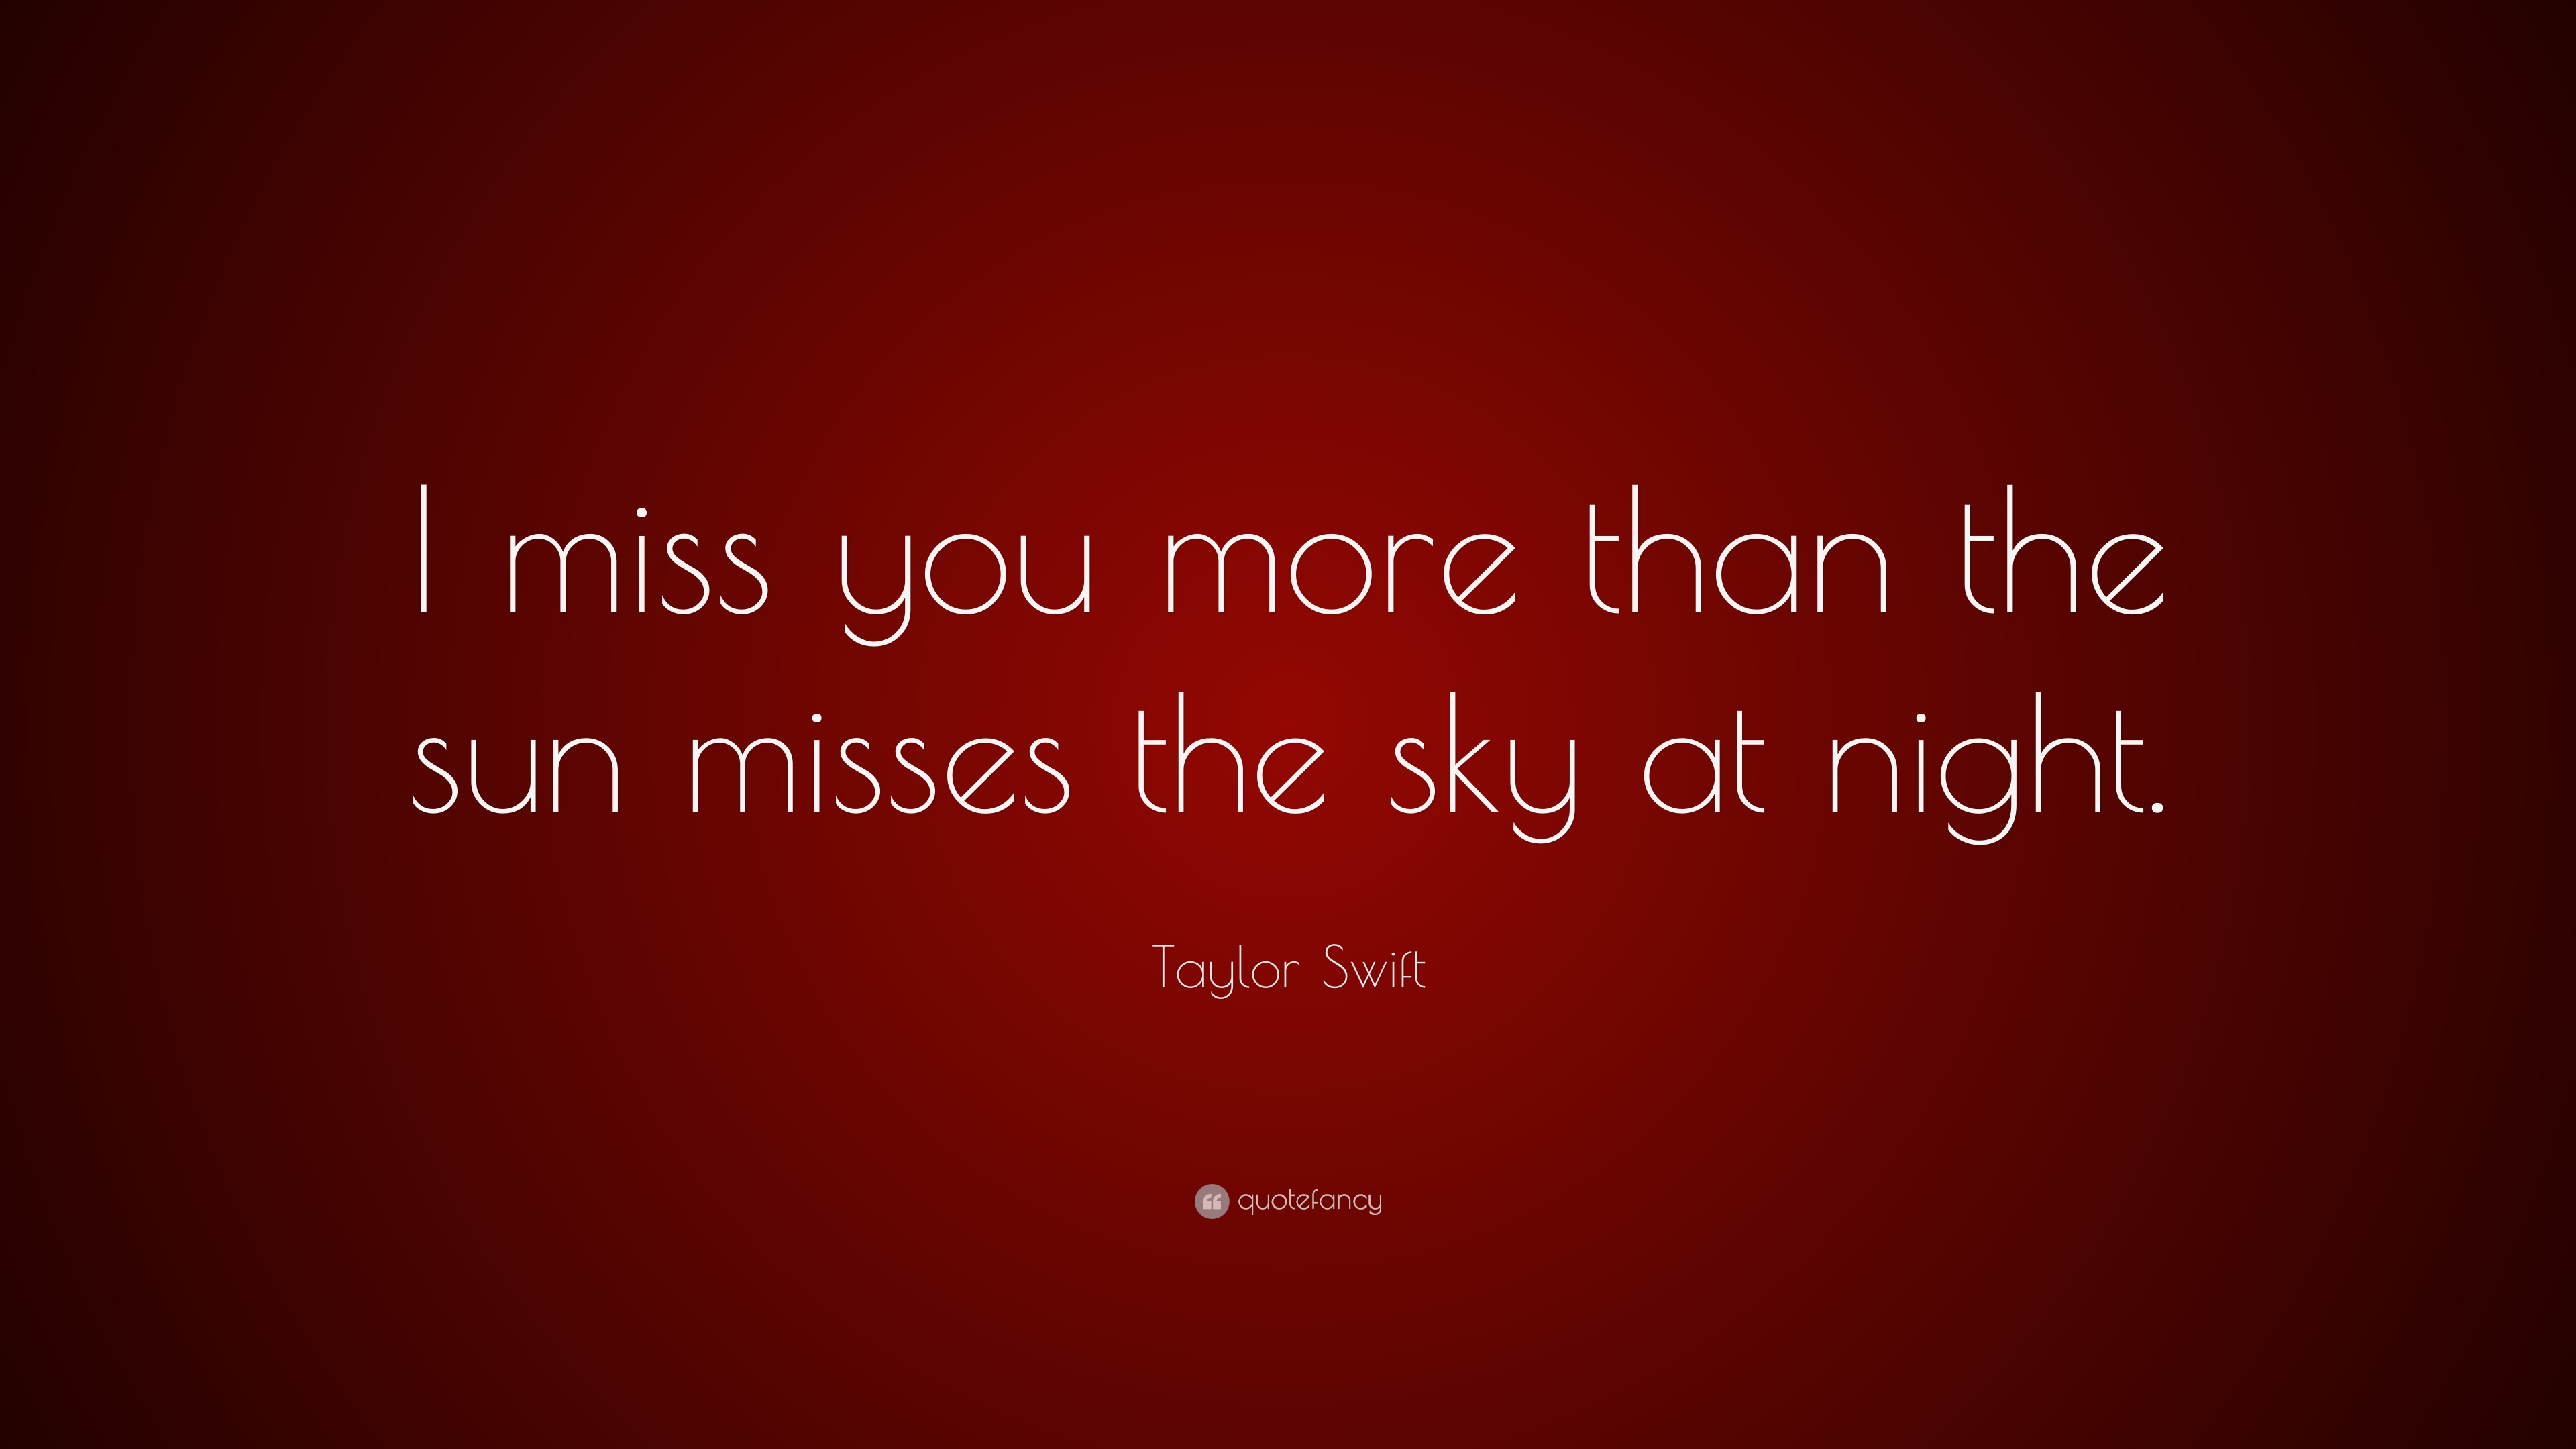 Kurt Cobain Quotes Wallpaper Taylor Swift Quote I Miss You More Than The Sun Misses